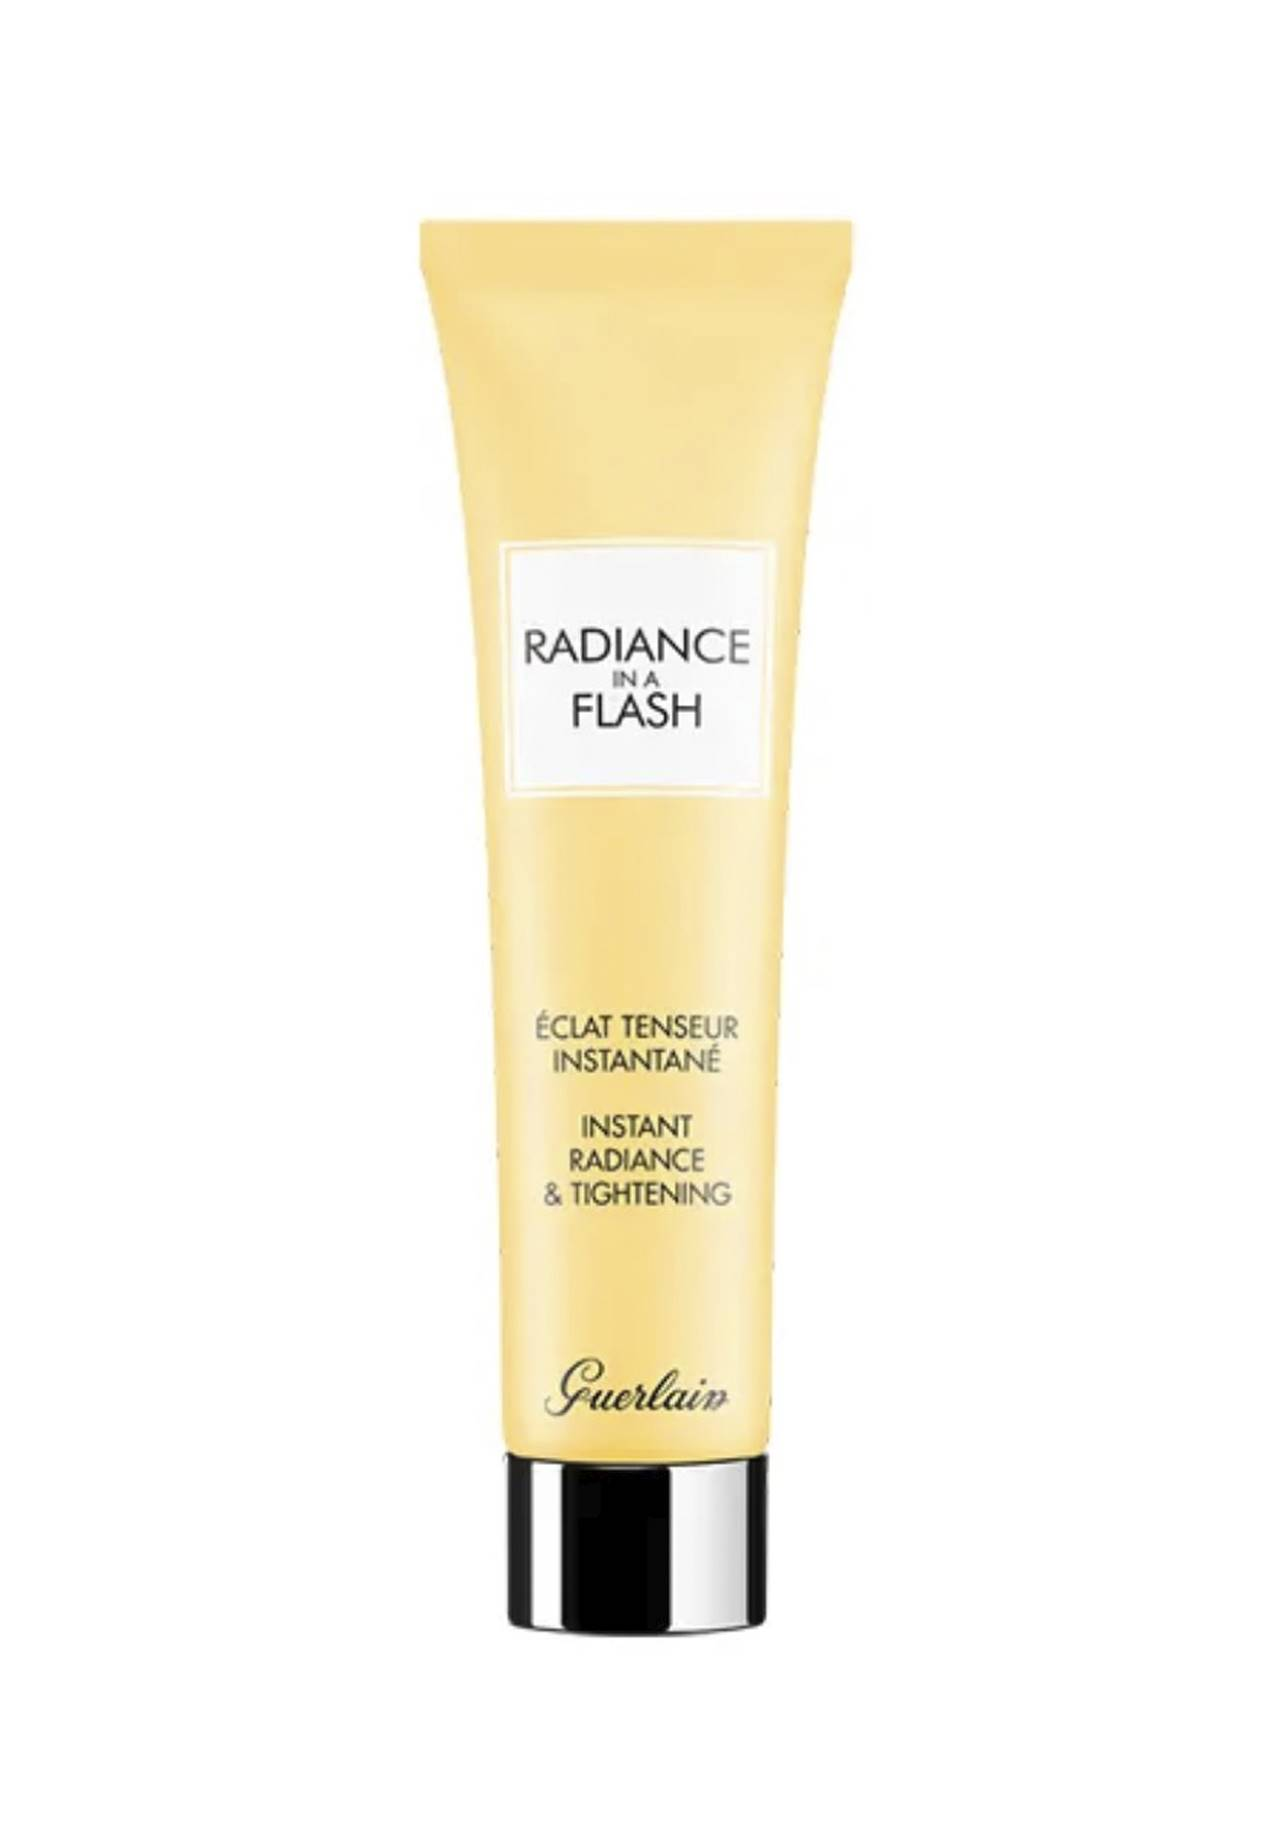 Radiance in a Flash de Guerlain